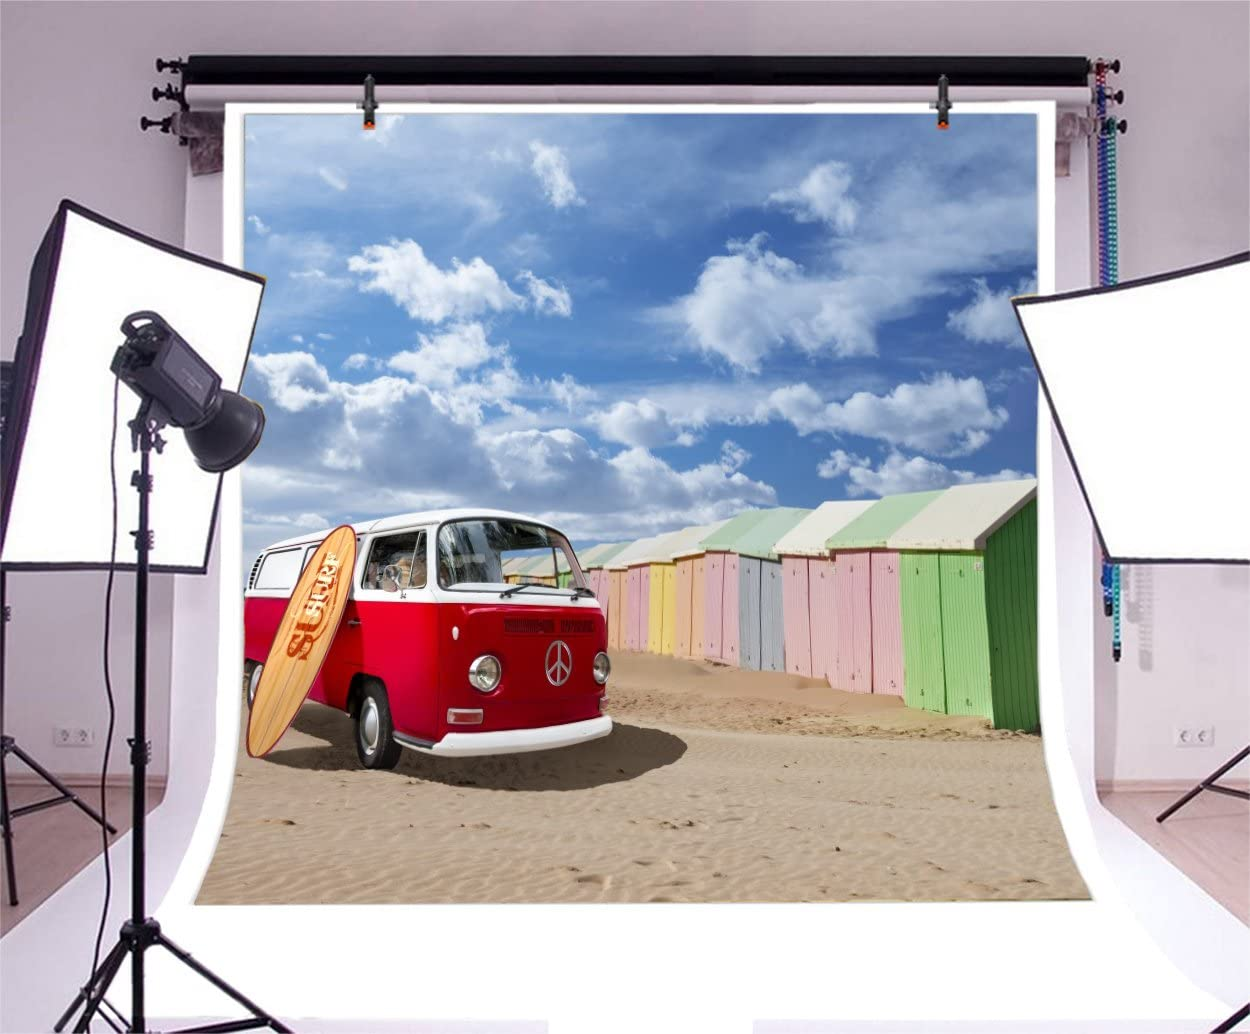 LFEEY 10x10ft Red Travel Car Photography Background for Photos Summer Beach Blue Sky Sand Colorful Wooden Houses Motor Homes Surfboard Backdrop Photo Studio Props